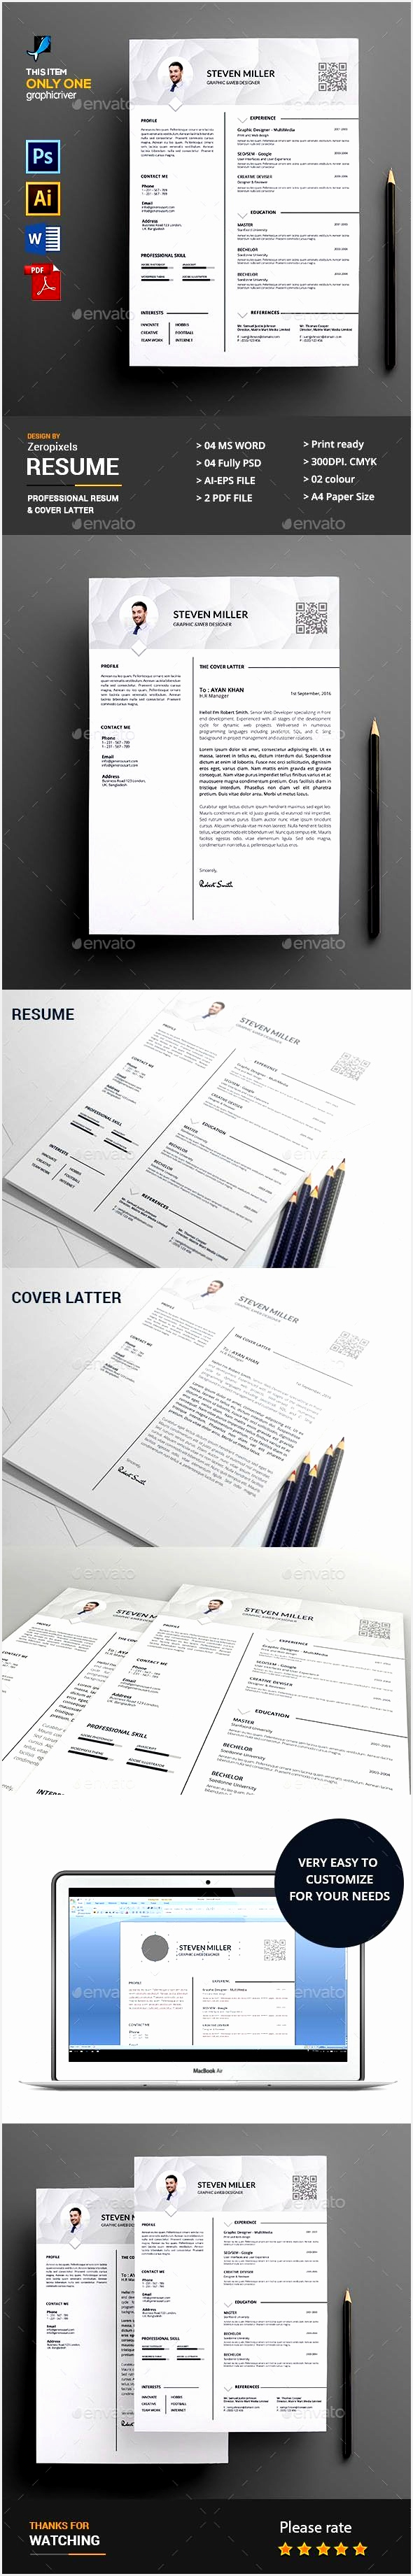 Resume Template PSD Vector AI MS Word Download here3683590